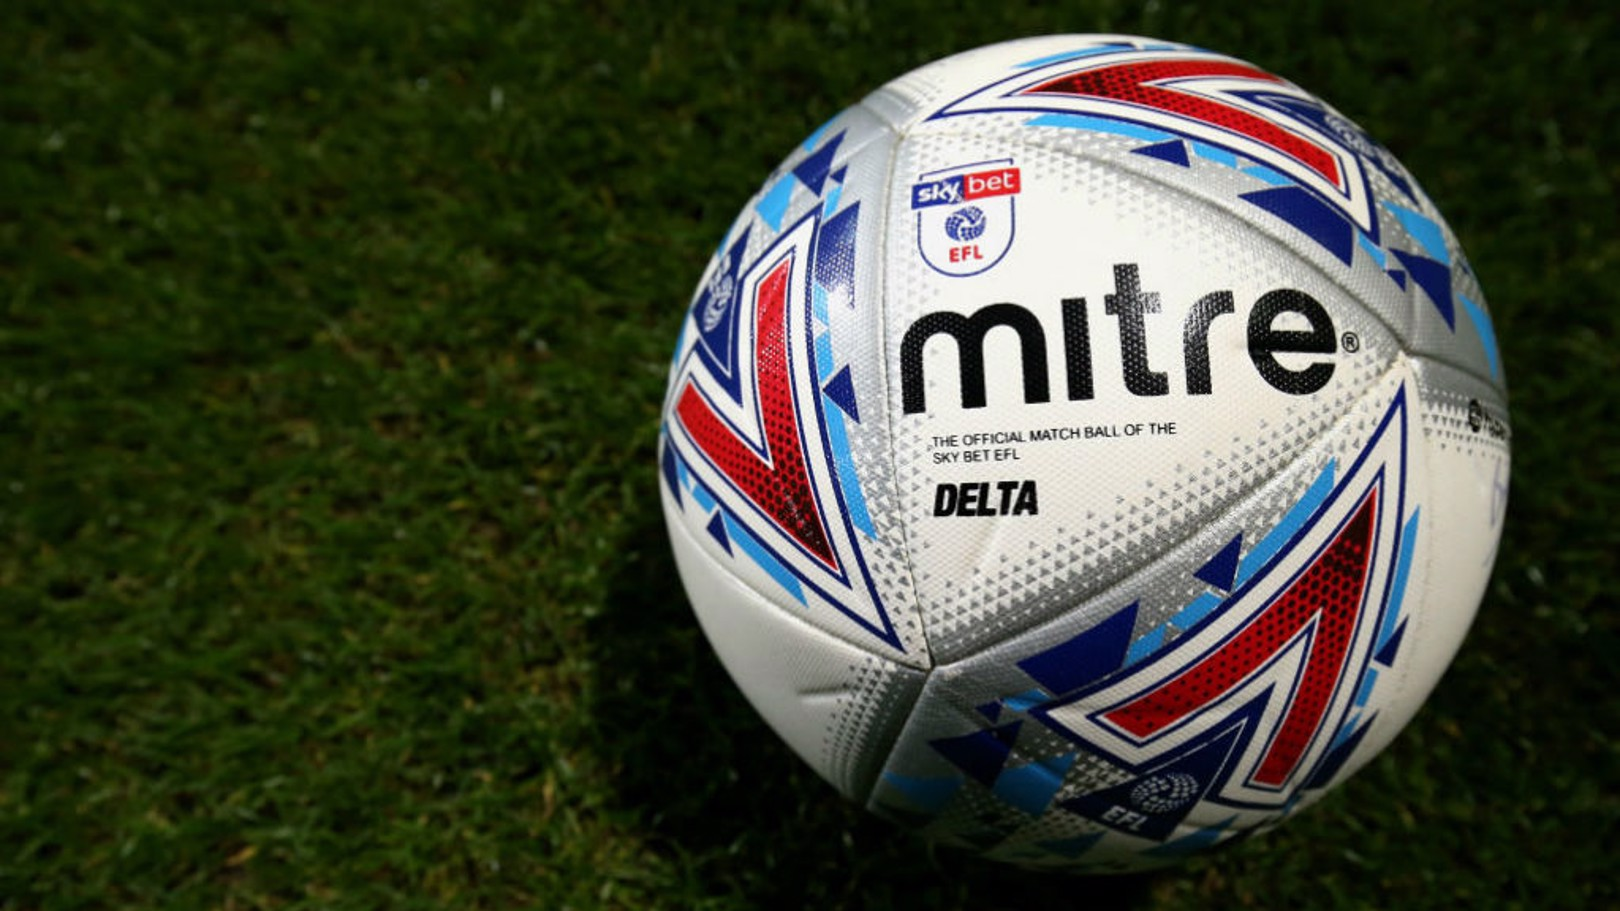 EFL TROPHY: City are in the last-32 of the EFL Trophy